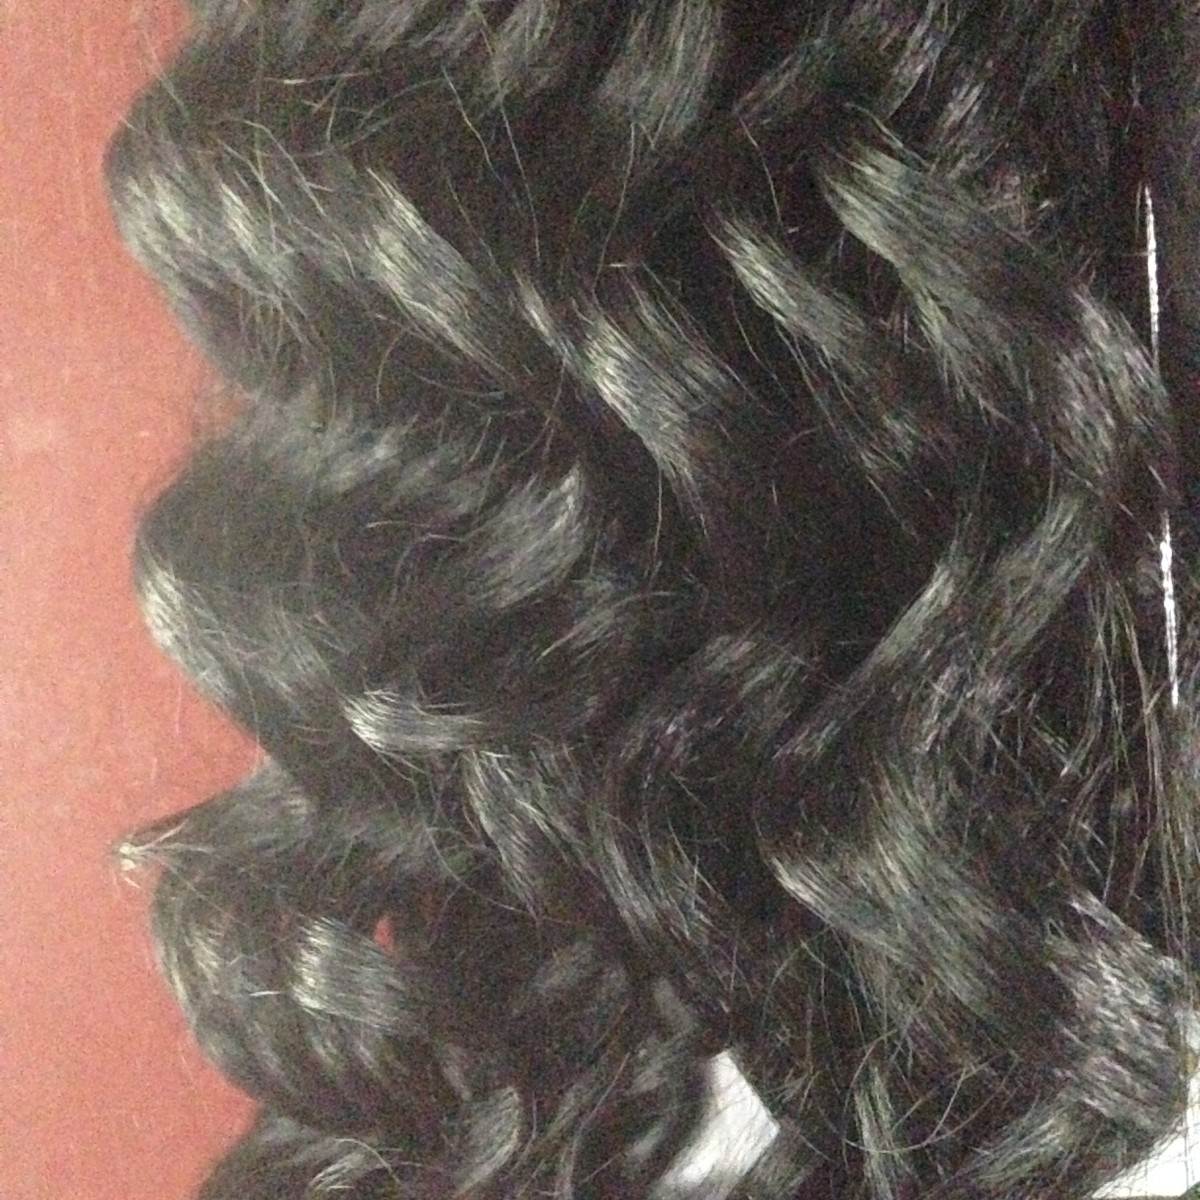 The curl pattern on this curly wig makes it popular.